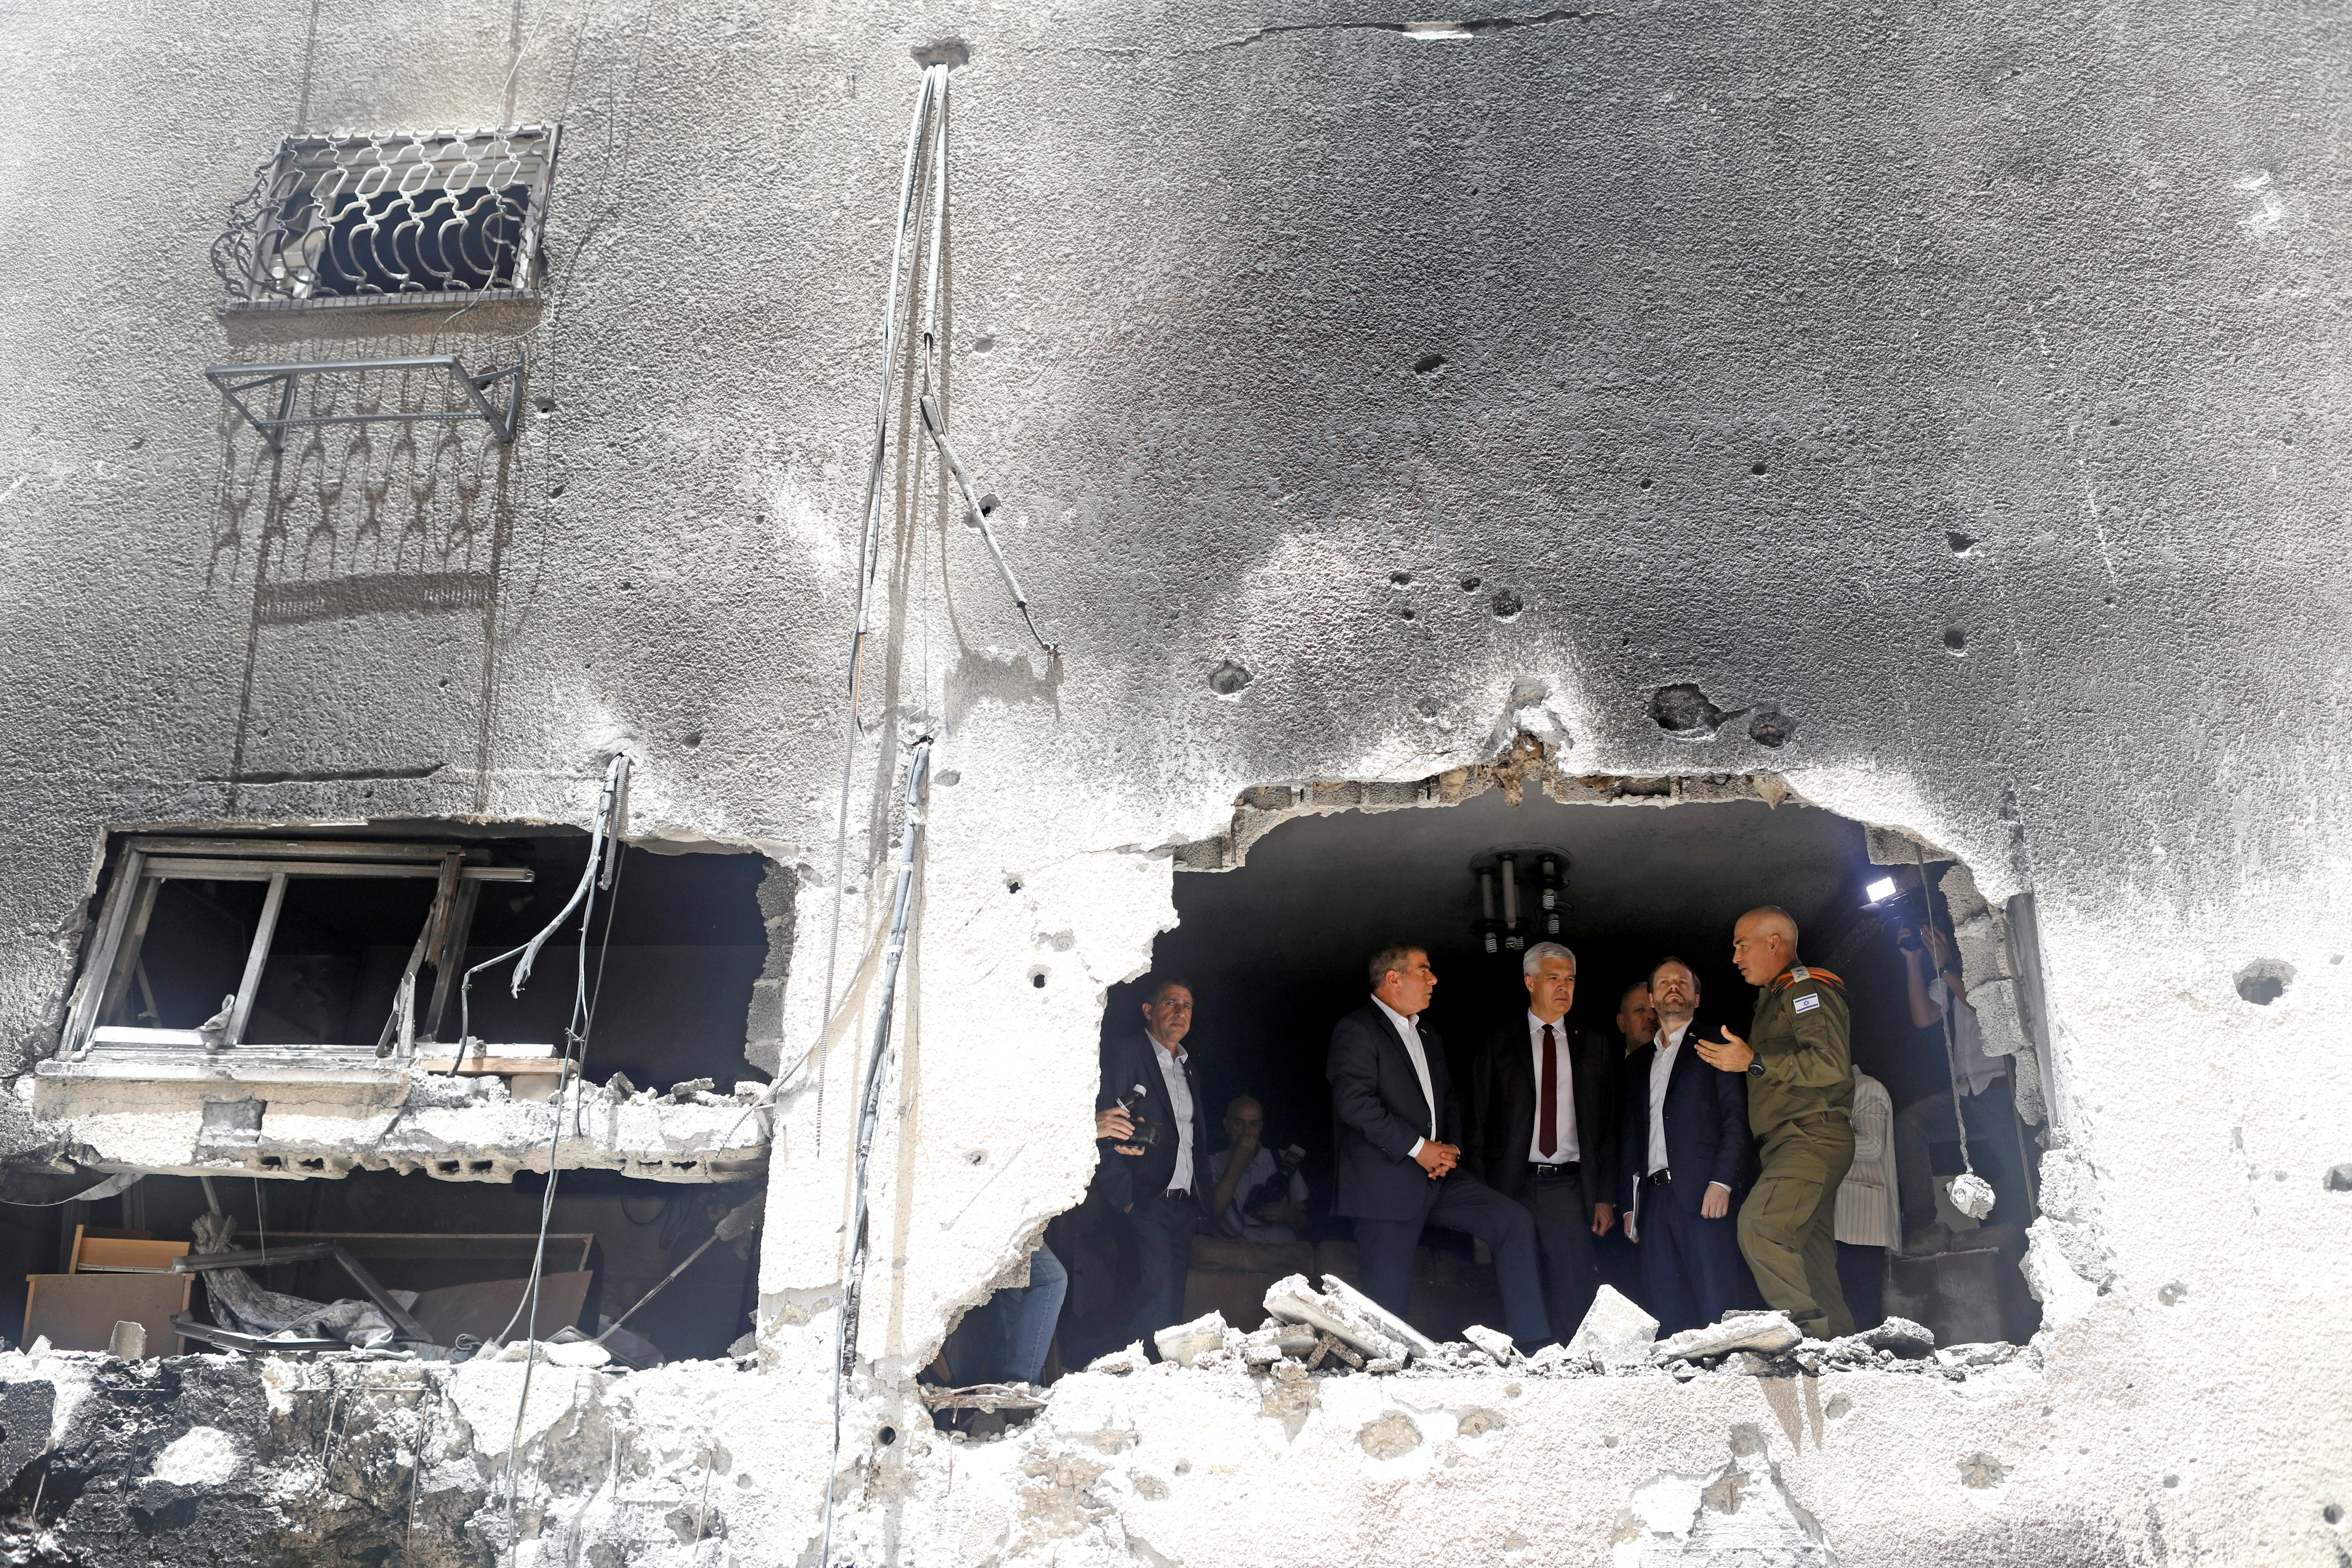 Israeli Foreign Minister Gabi Ashkenazi speaks to his Czech counterpart Jakub Kulhanek and Slovak counterpart Ivan Korcok as they visit the site of a building damaged by a rocket launched from the Gaza Strip last week, in Petah Tikva, Israel May 20, 2021. REUTERS/Nir Elias